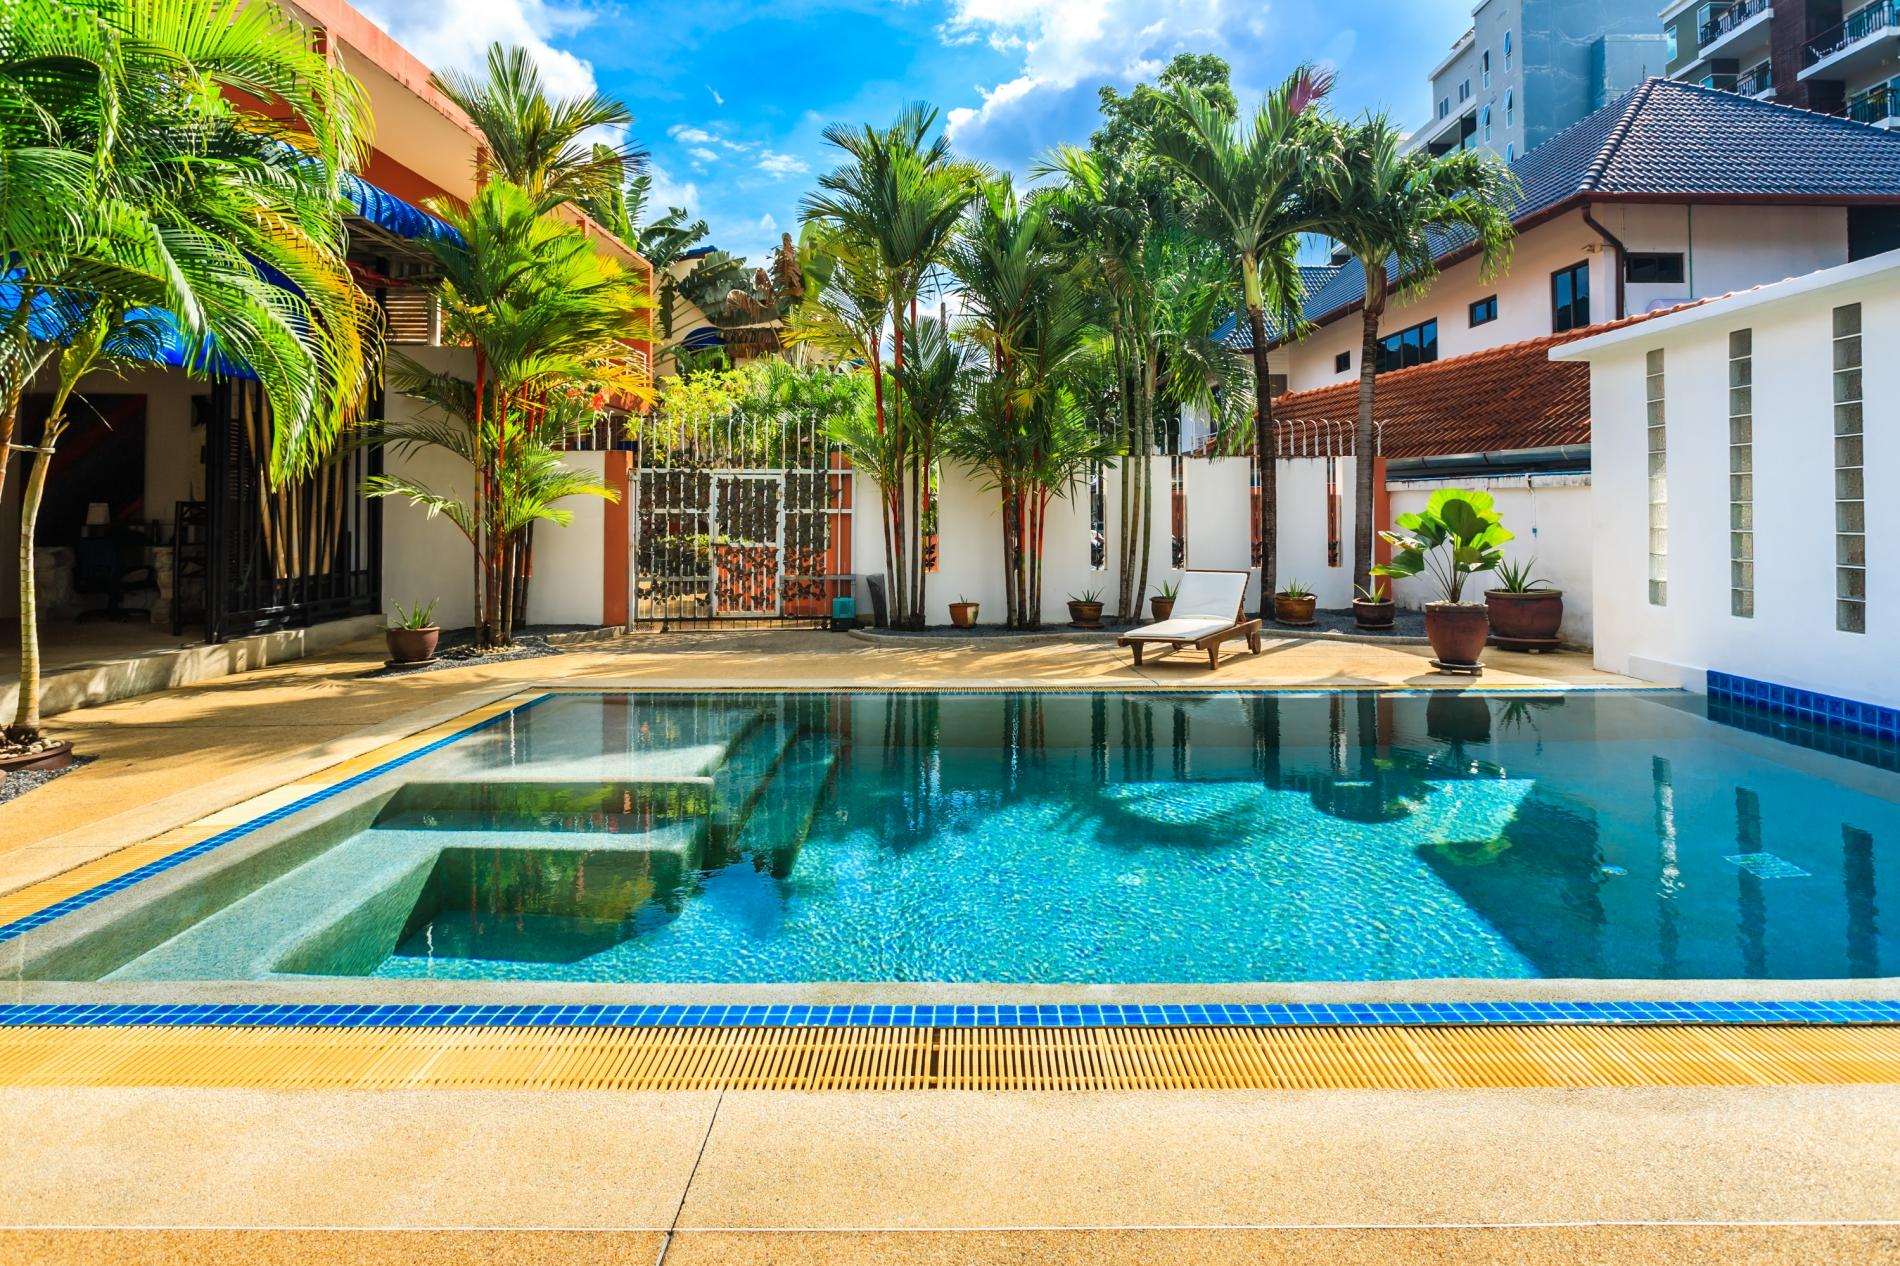 Apartment Jungceylon villa - Private swimming pool and billiards in the heart of Patong photo 20320464